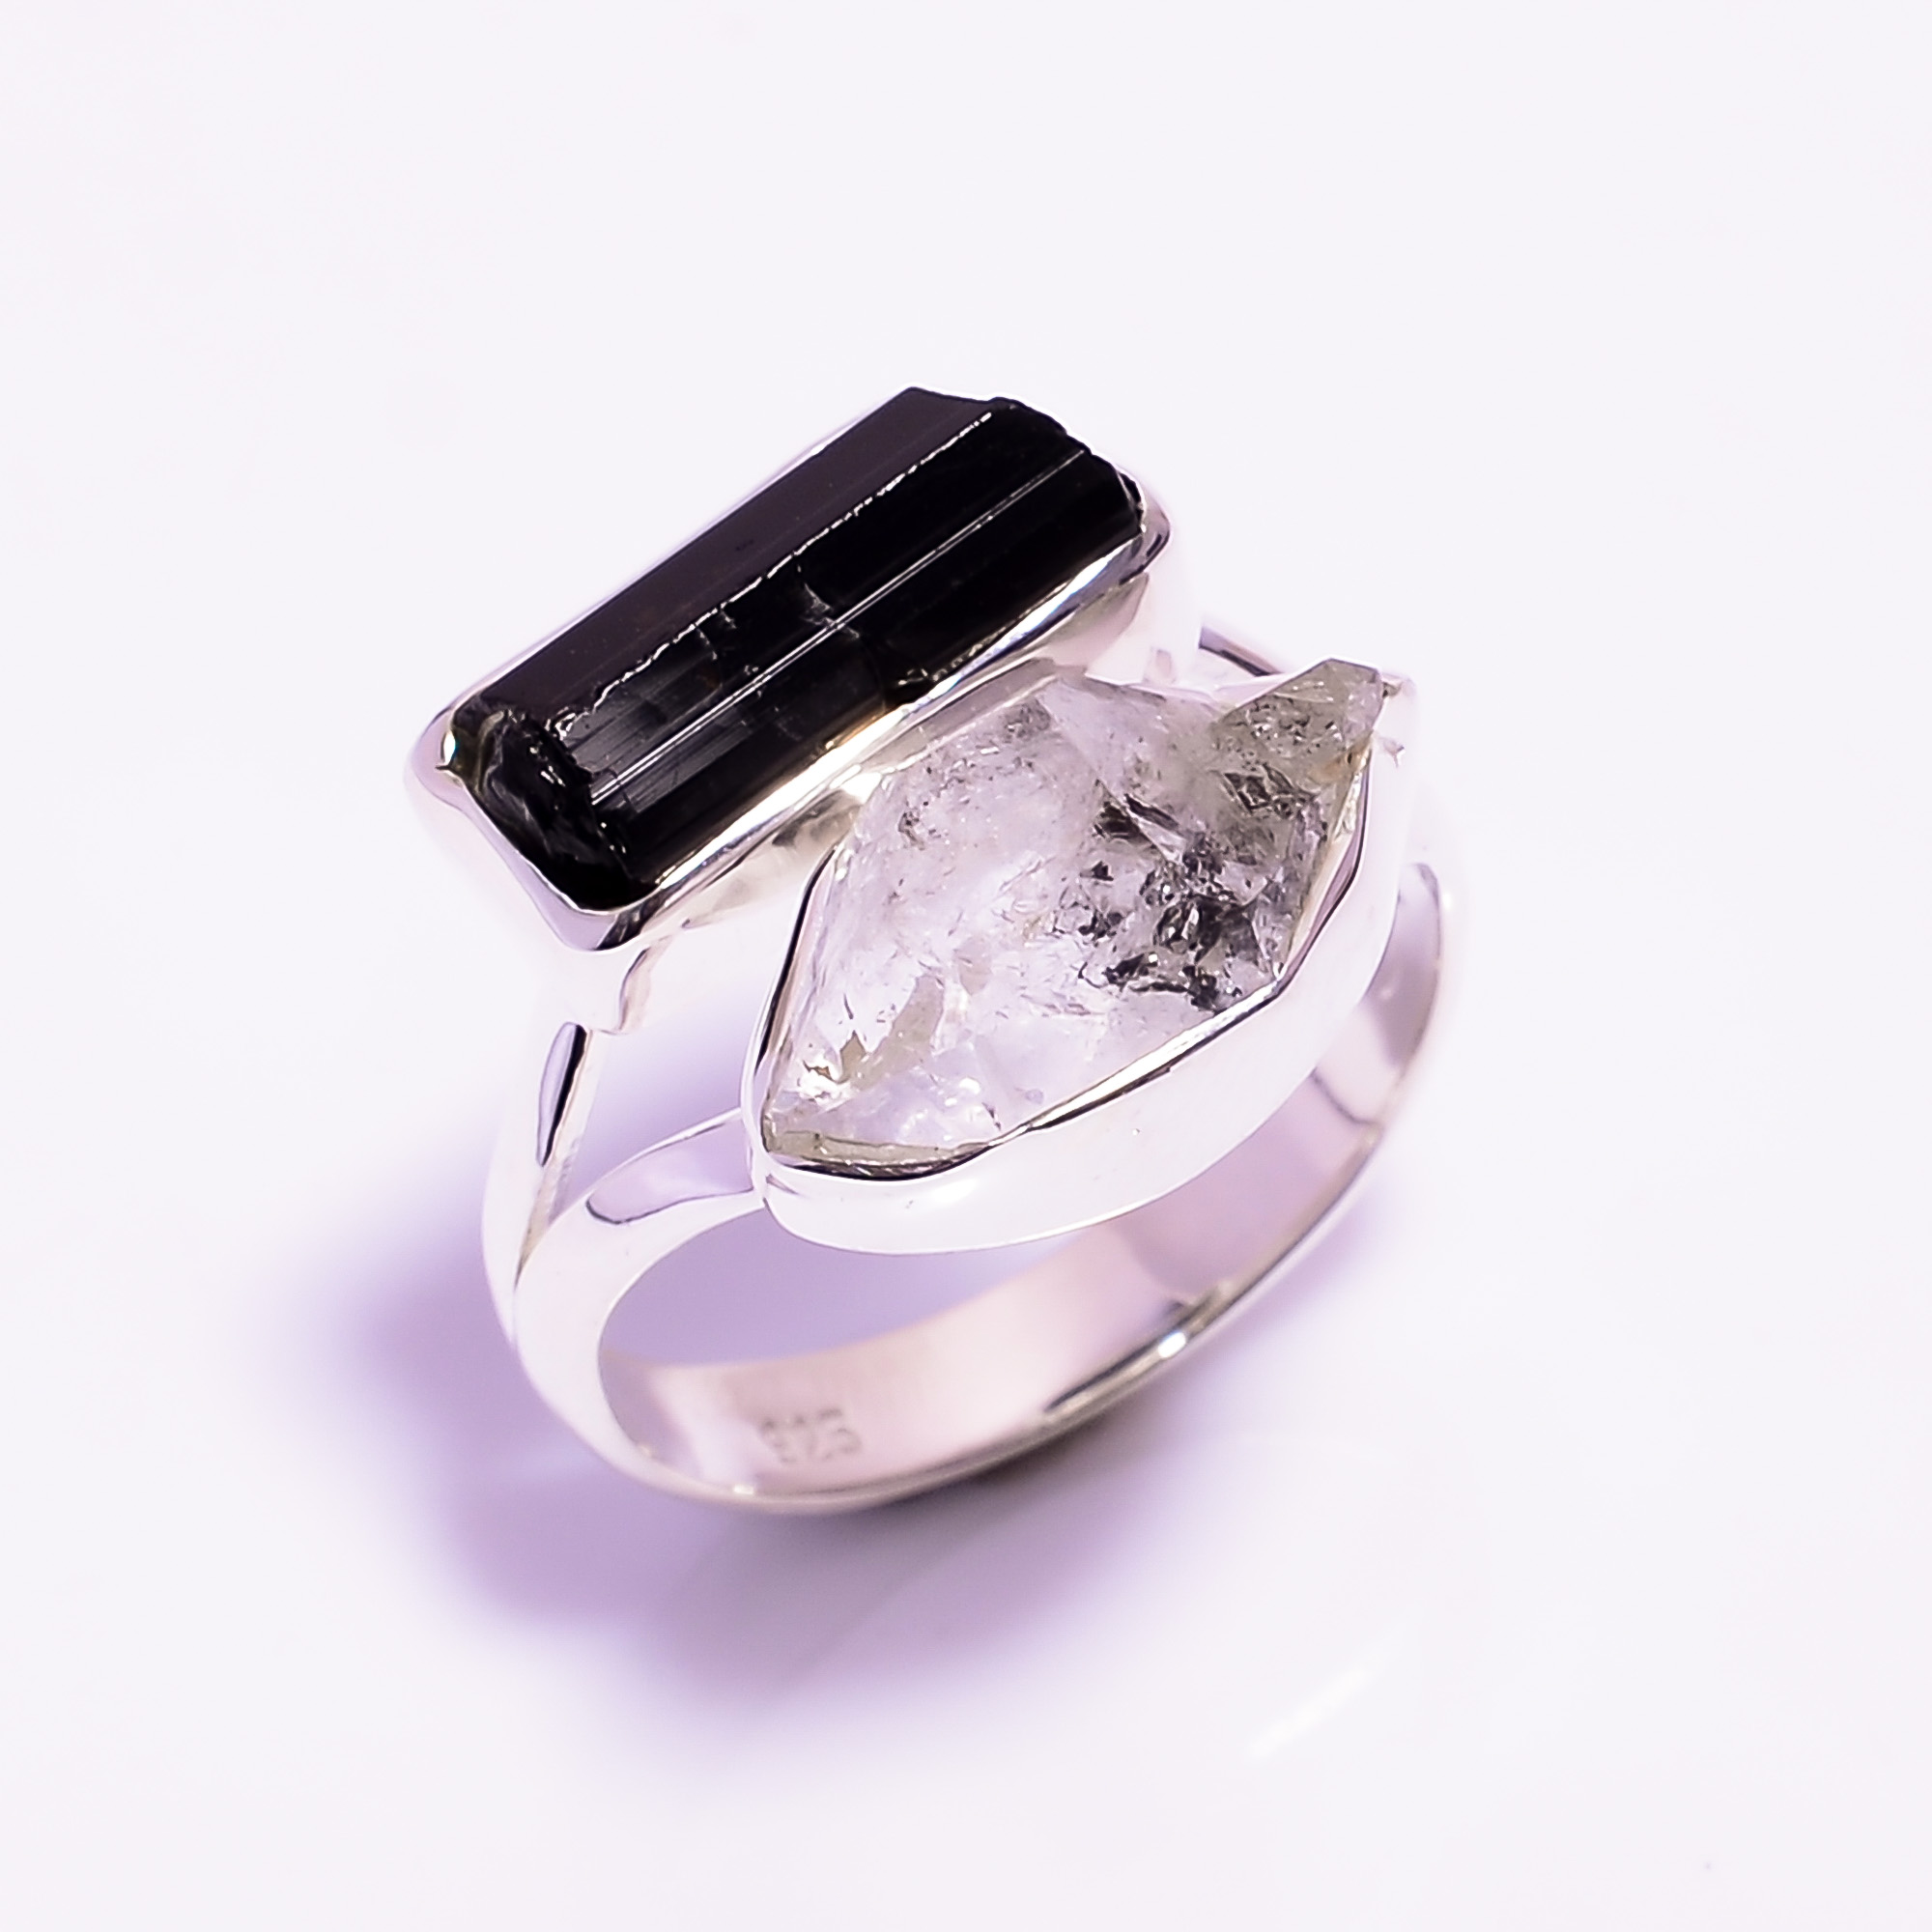 Herkimer Diamond Black Tourmaline Raw Gemstone 925 Sterling Silver Ring Size US 6.75